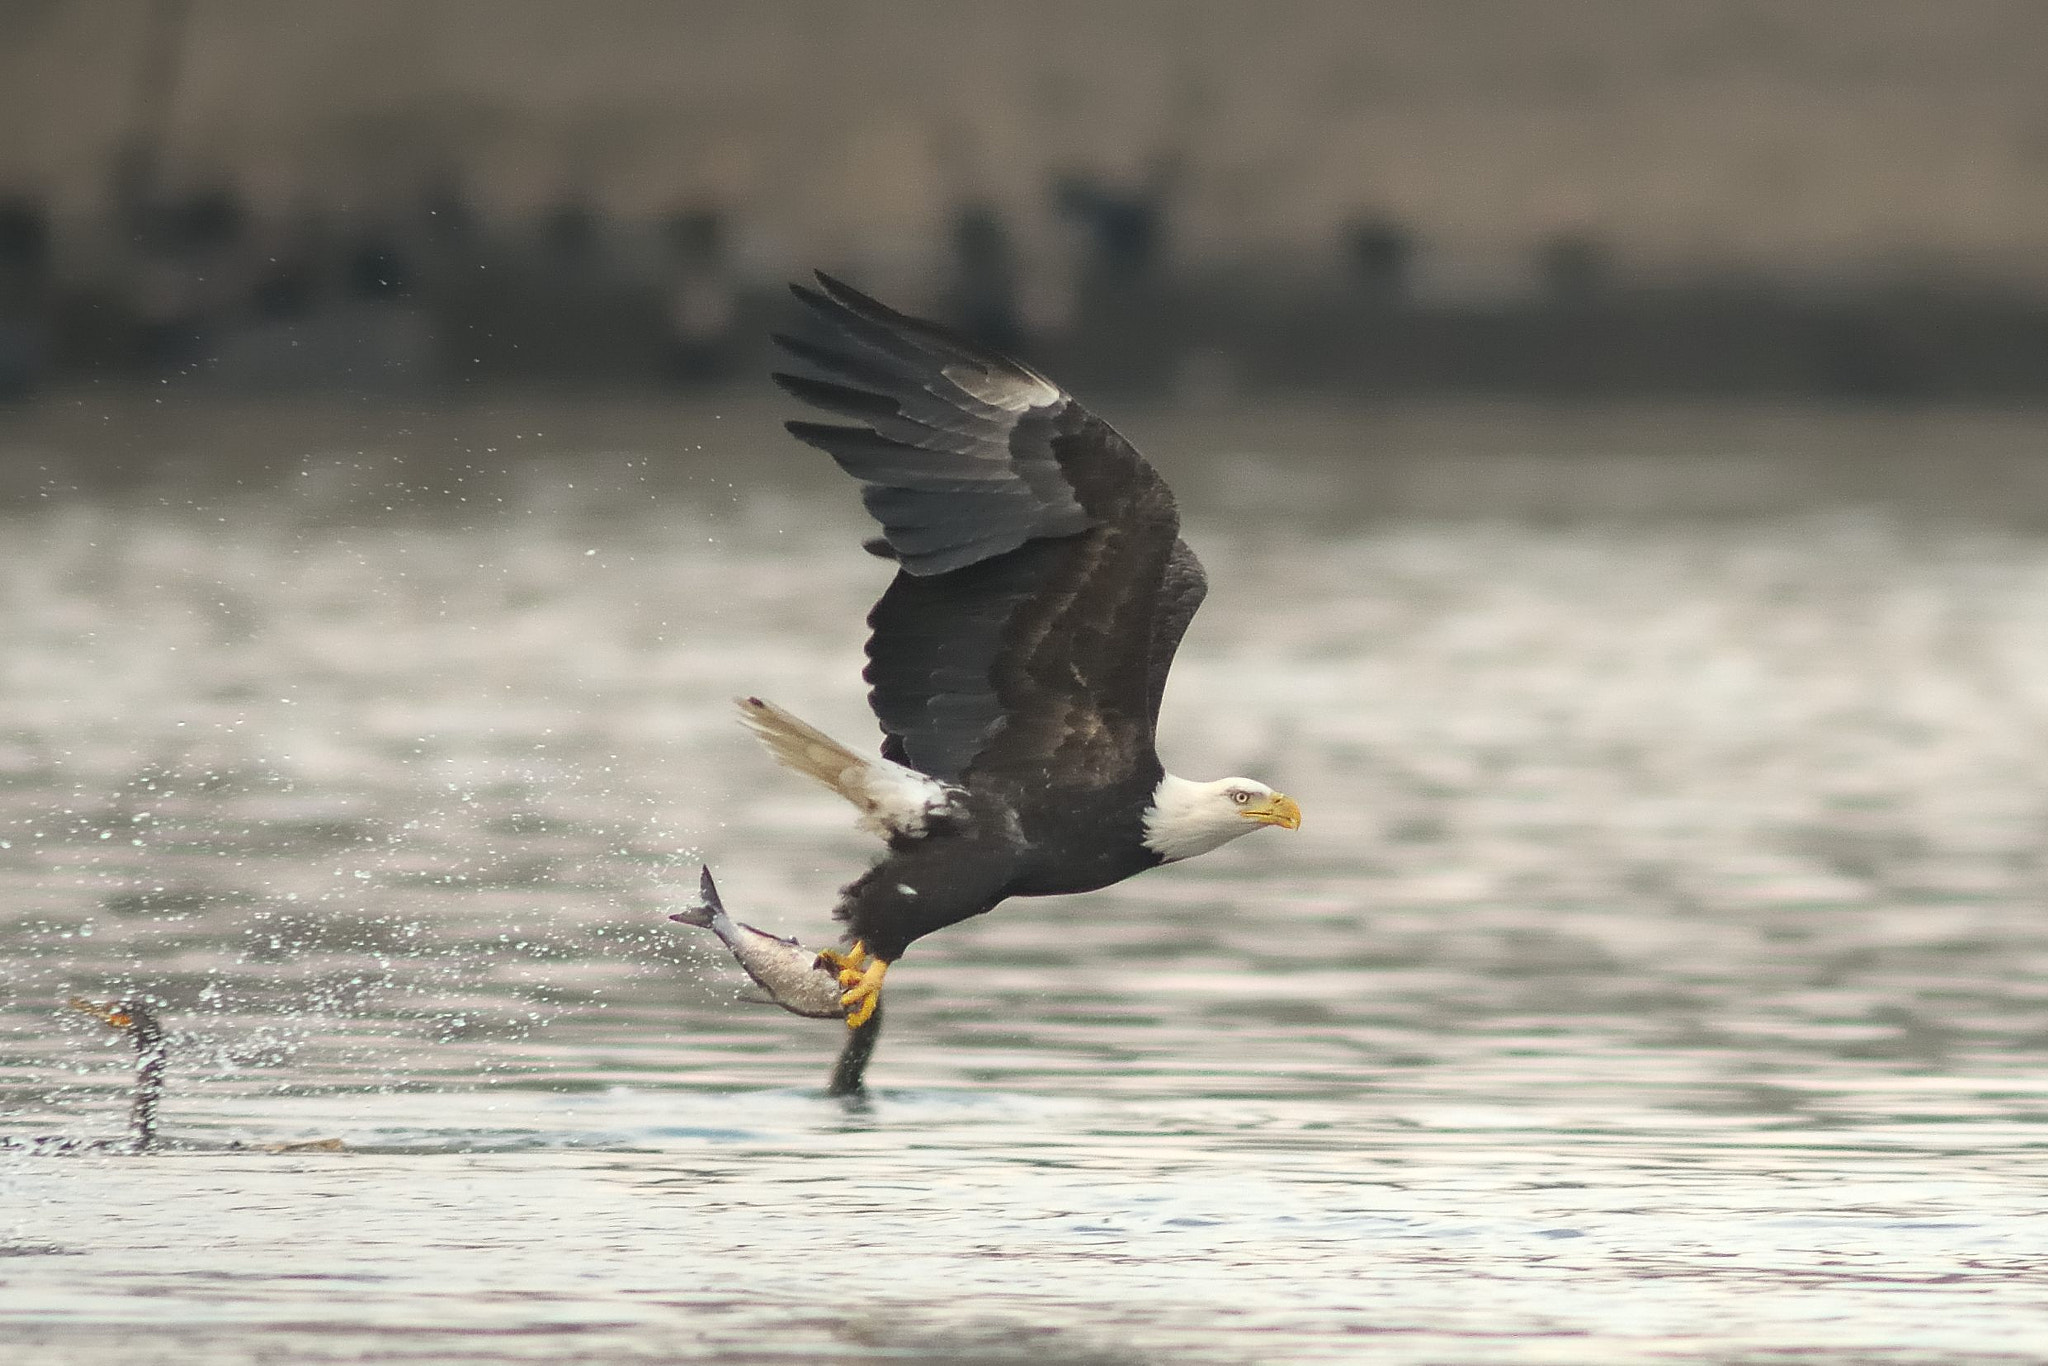 Photograph Two Talon Catch by Mark Schwall on 500px